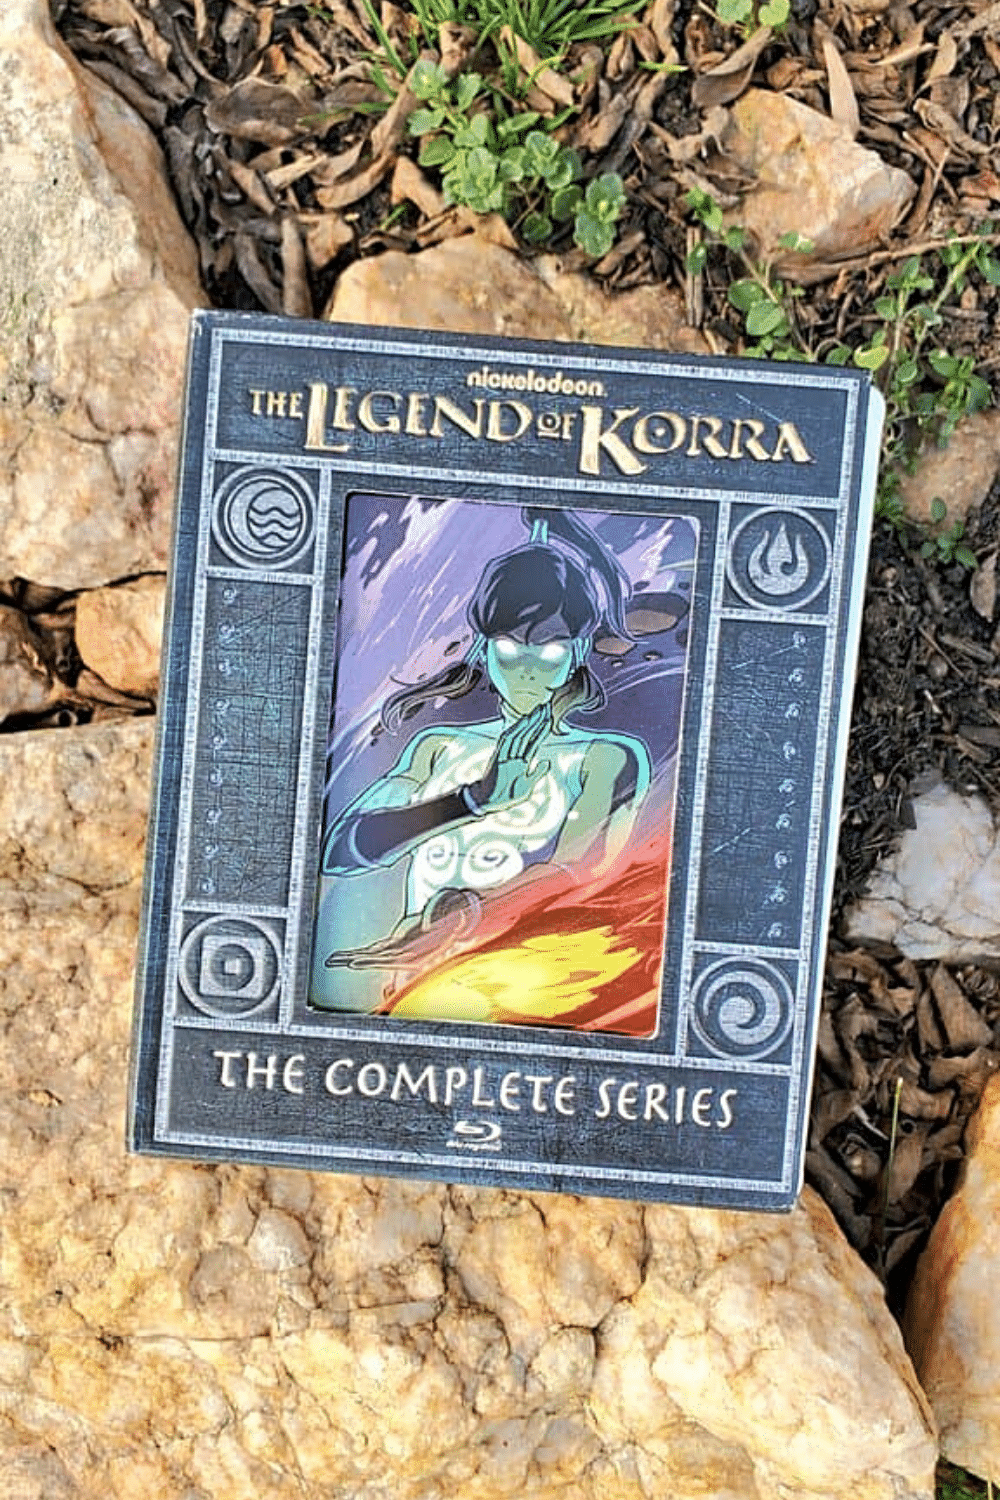 The Legend of Korra Limited Edition Steelbook Collection. It's a 4-book collection that features stunning new artwork by artist Caleb Thomas. Each book featuring a different element (Fire, Water, Earth, and Air).